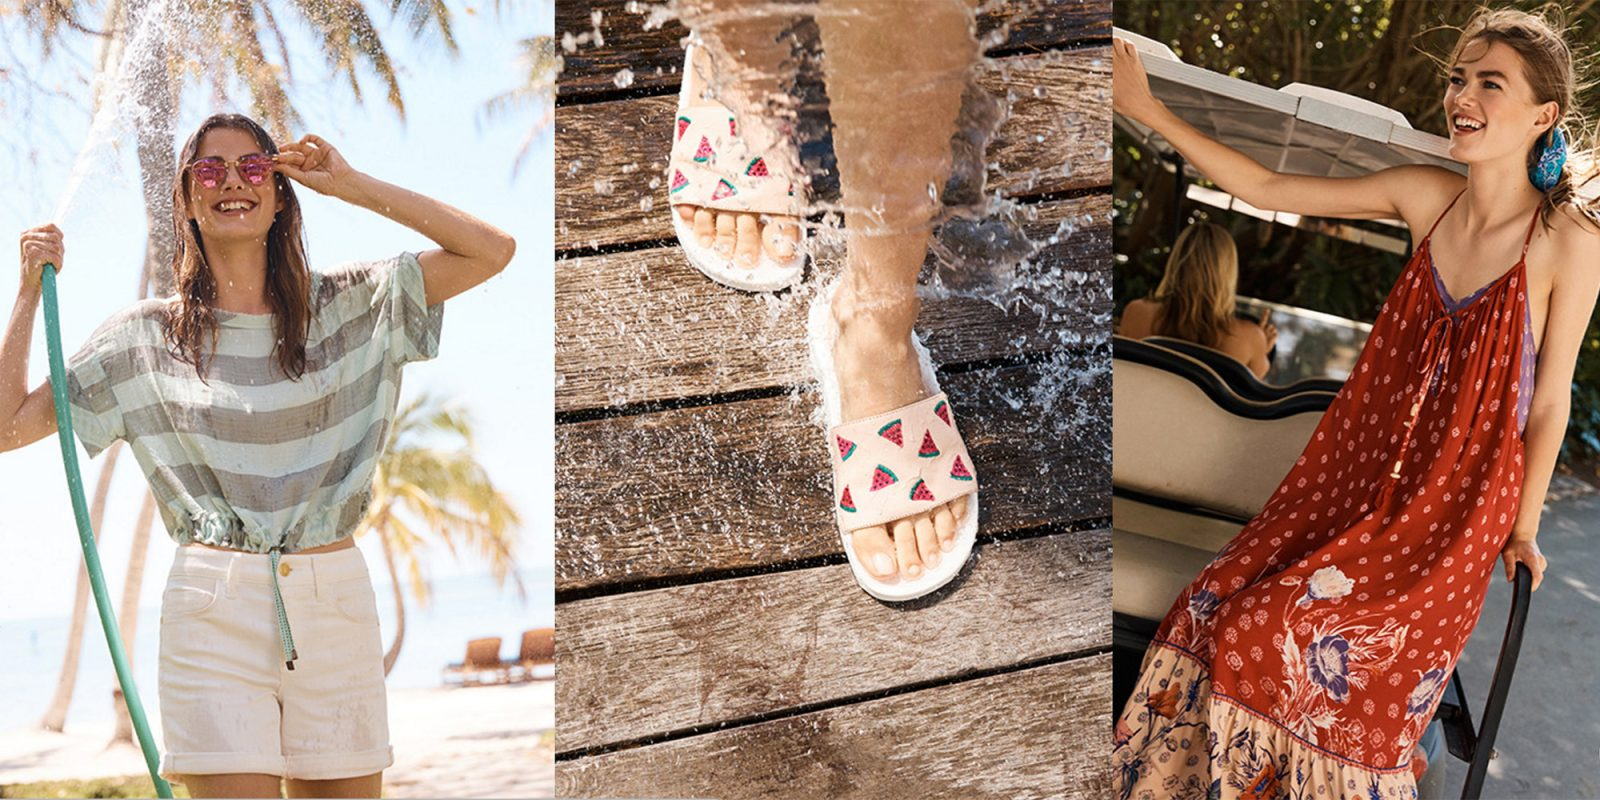 fd3ba42b544 Anthropologie Summer Tag Sale: enjoy 50% off Clothing, Home Goods and more!